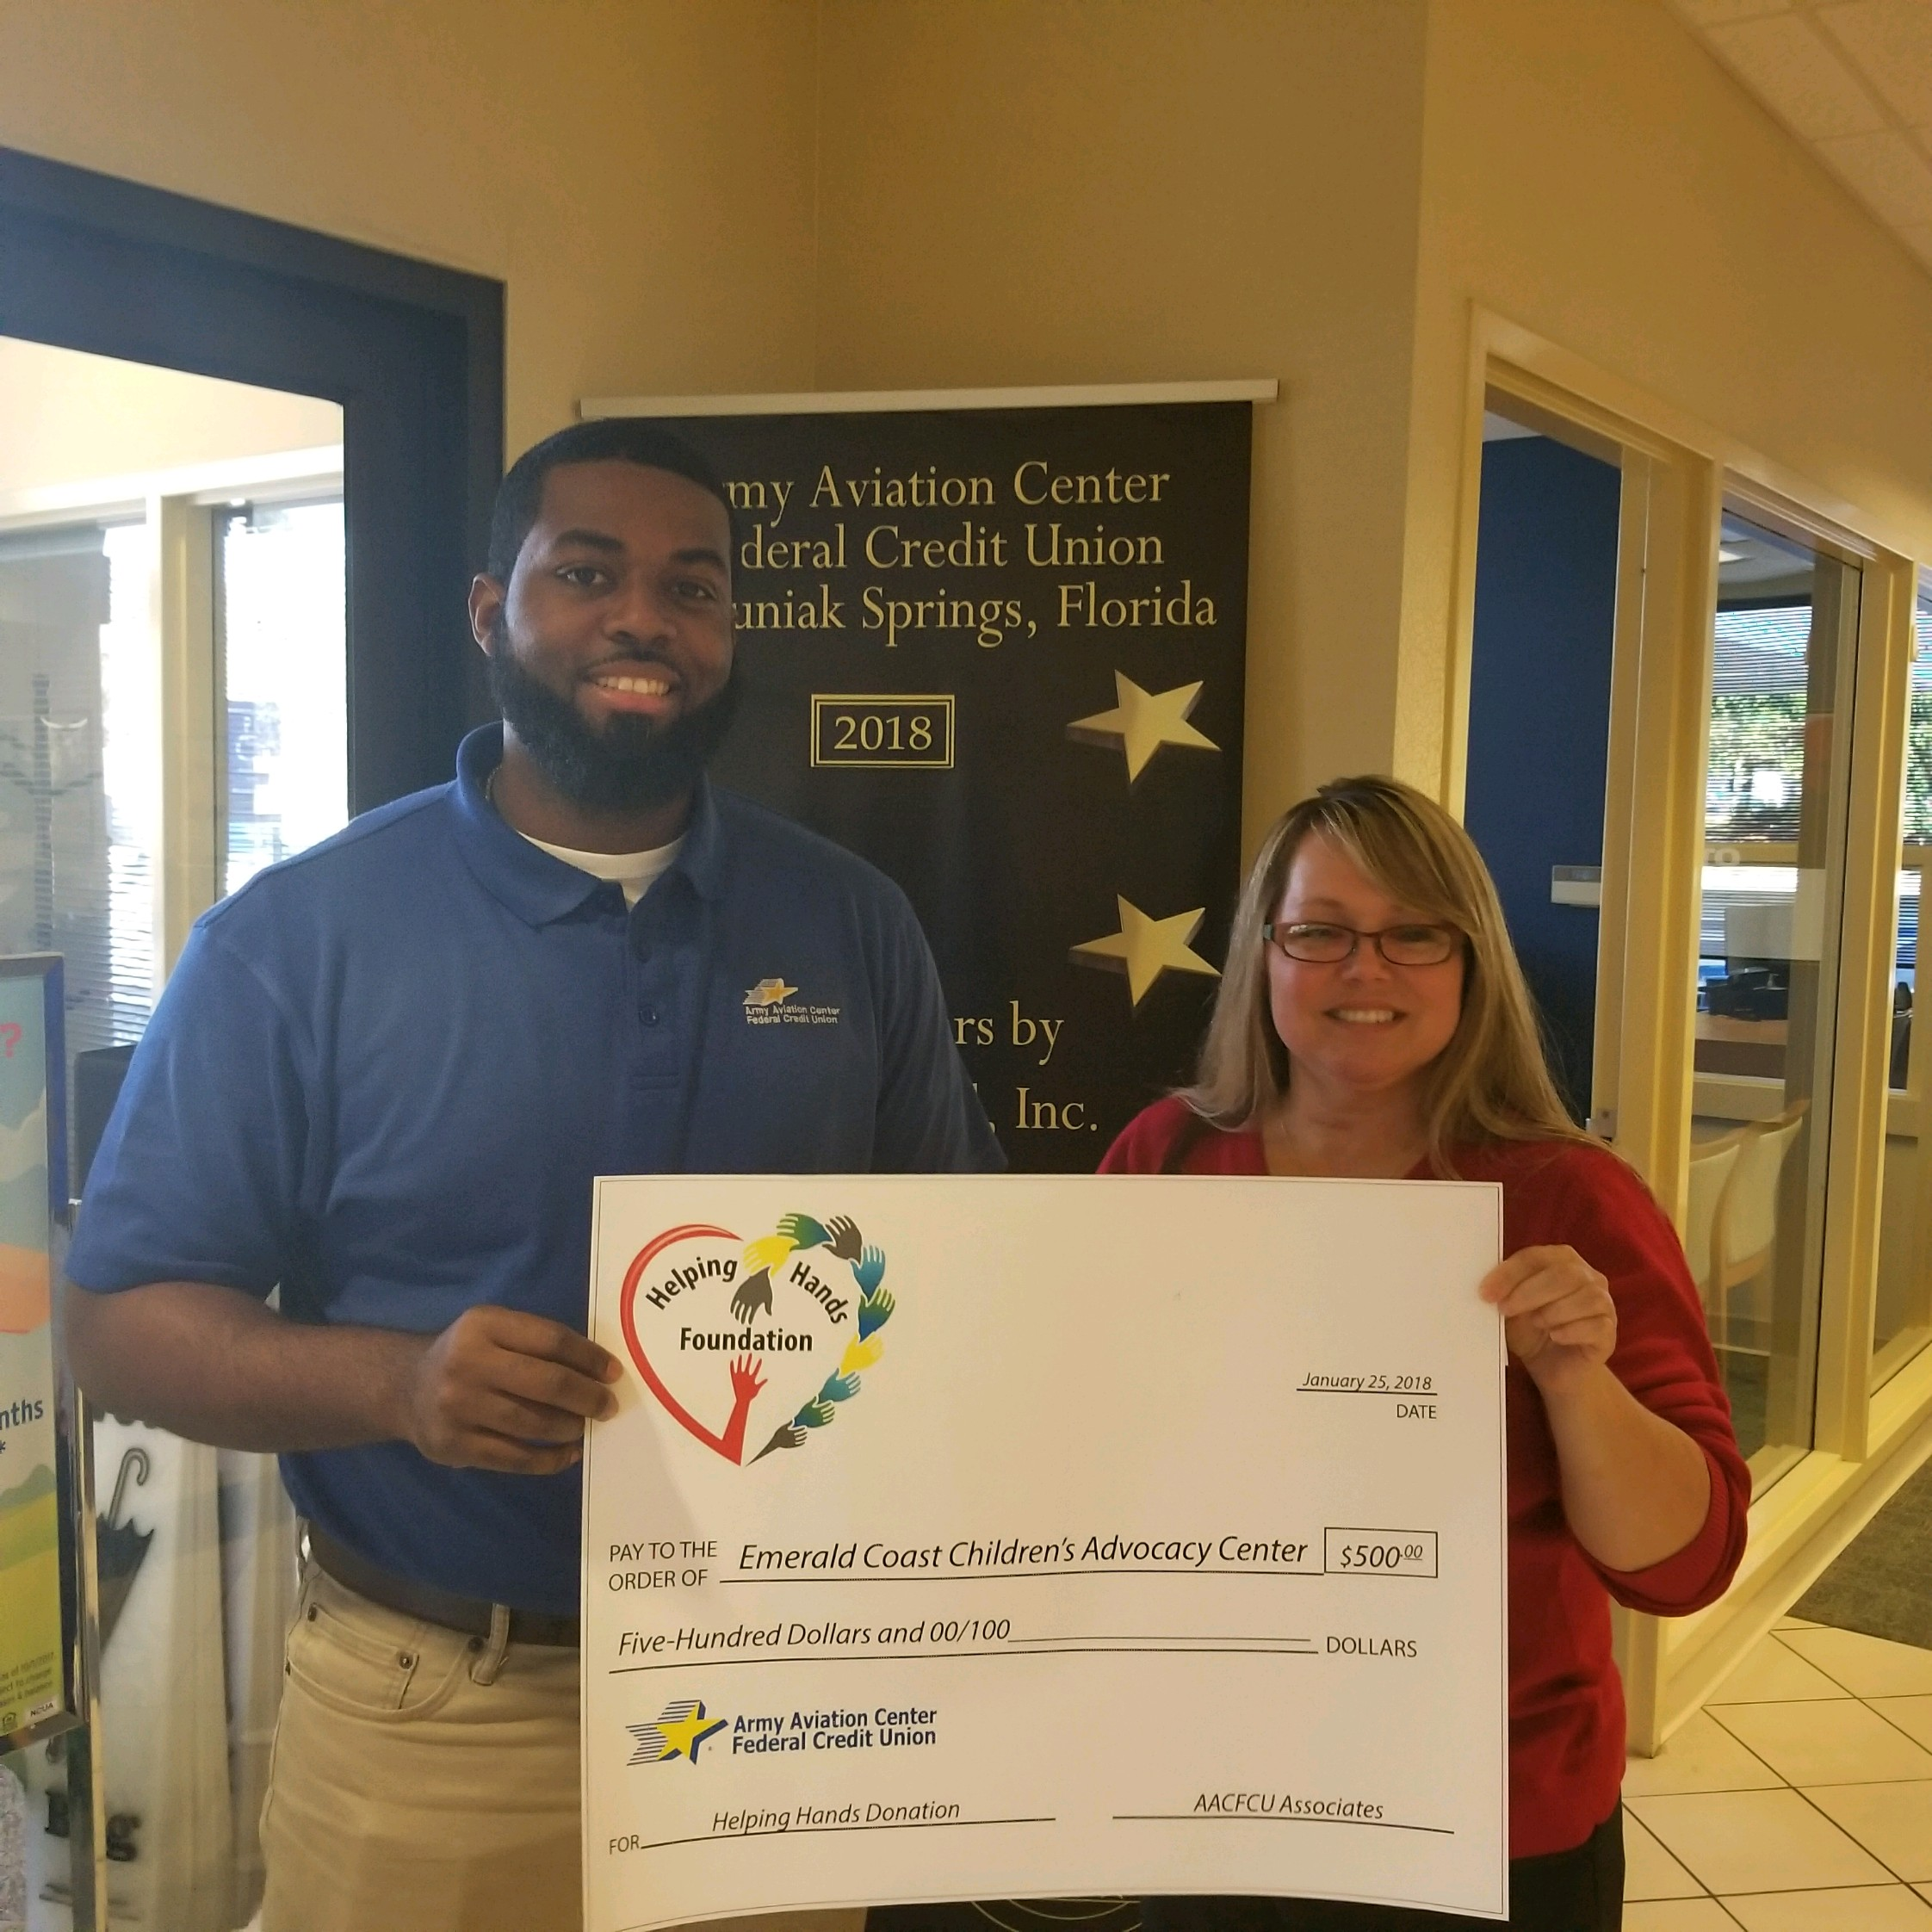 ECCAC receives $500 donation from Army Aviation Center Federal Credit Union   employees D'von Campbell and Jill Russell.